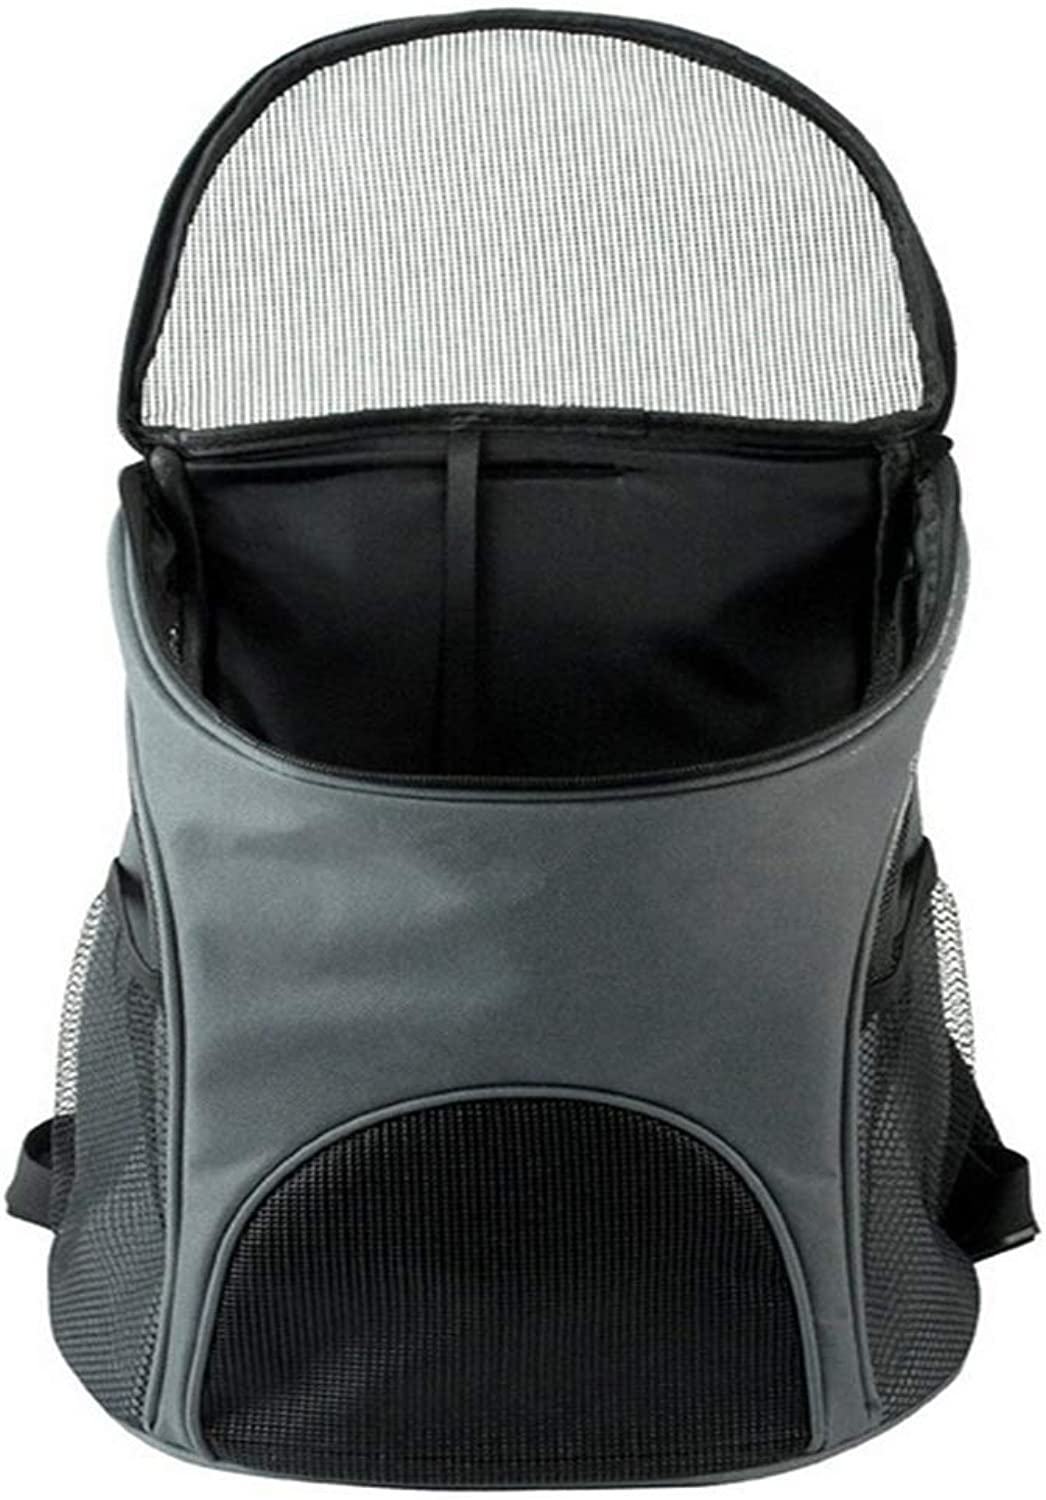 LXFGB Outofport portable mesh dog bag pet shoulder bag for small pet dog out pet supplies